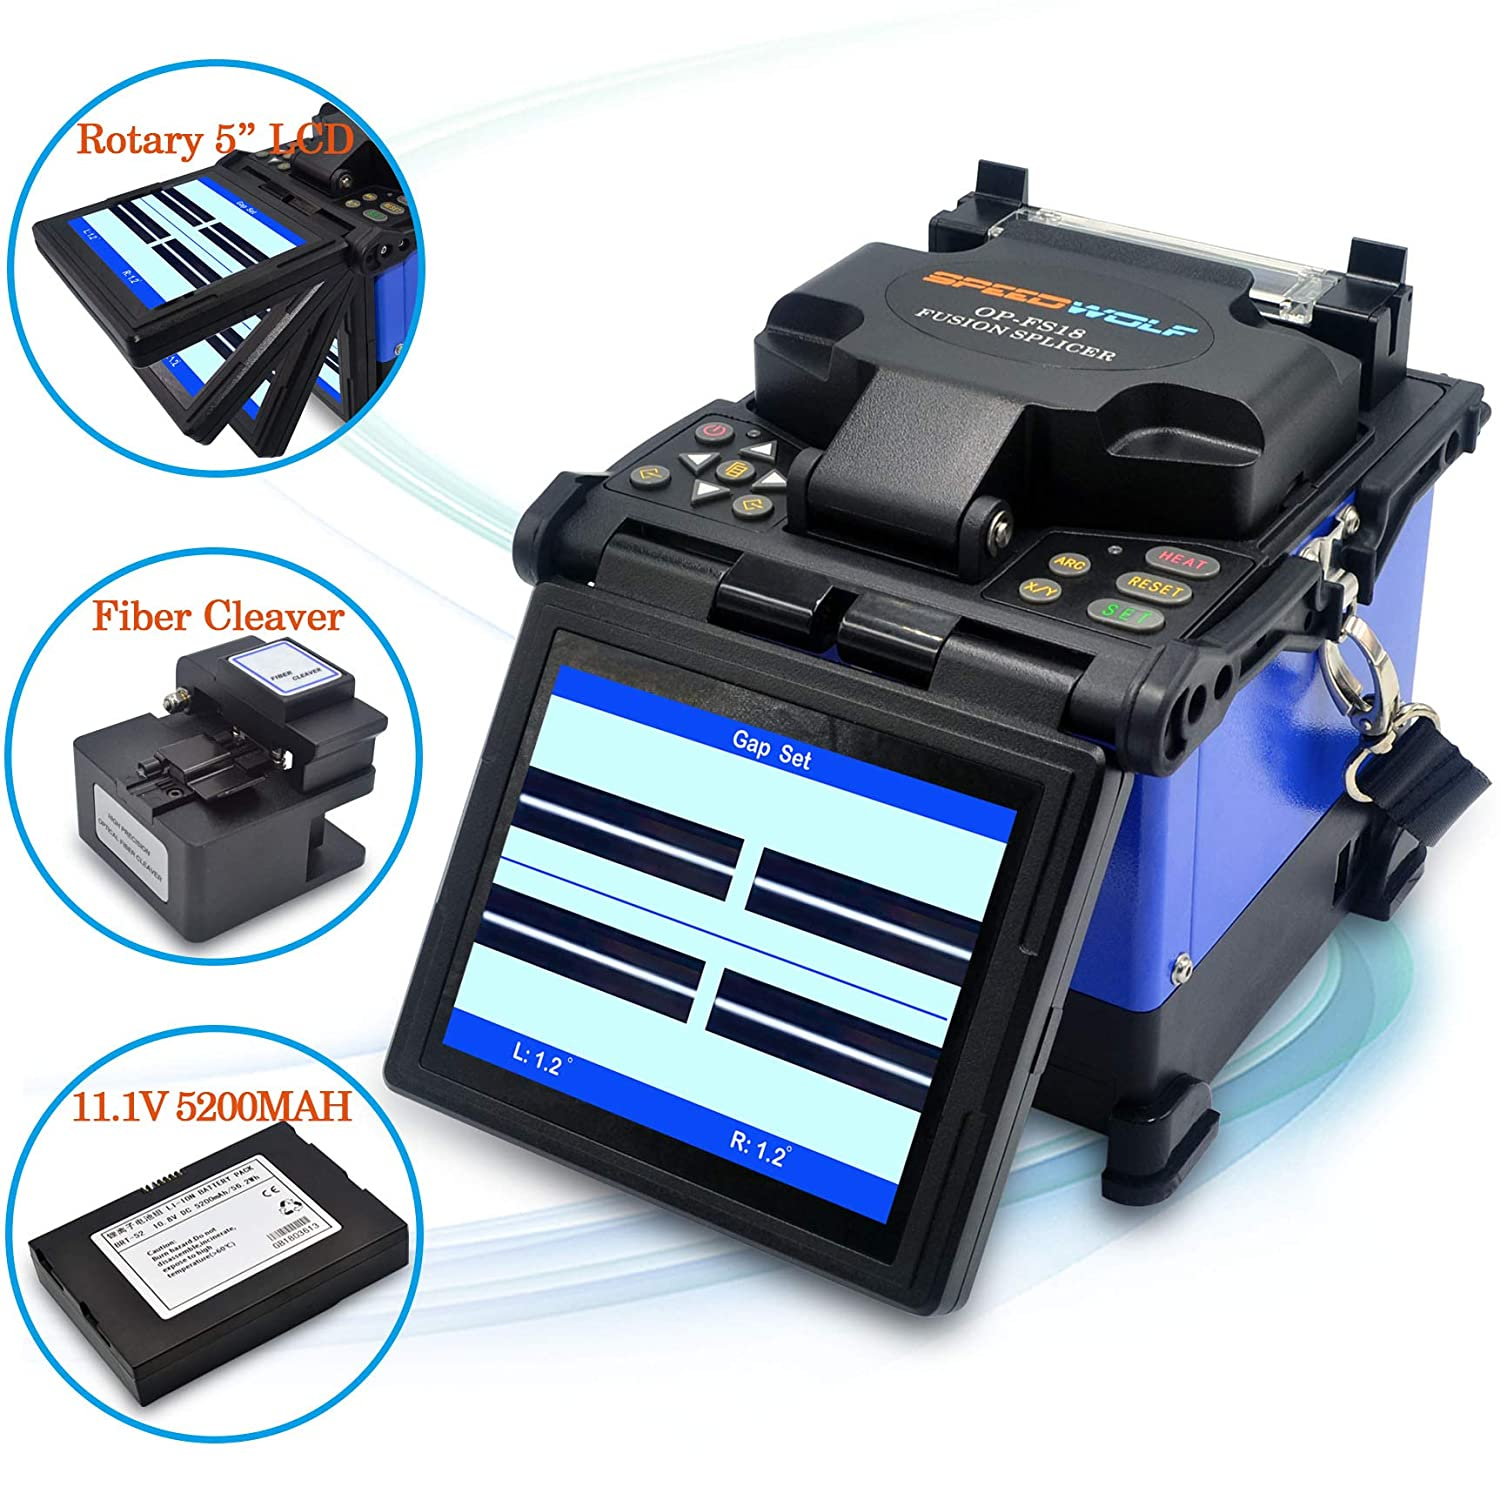 SPEEDWOLF 5' LCD High Precision Fiber Optic Fusion Splicer Machine for SM, MM, NZ-DS, EDF Fibers with Optical Fiber Cleaver and Automatic Focus Function(OP-FS18)